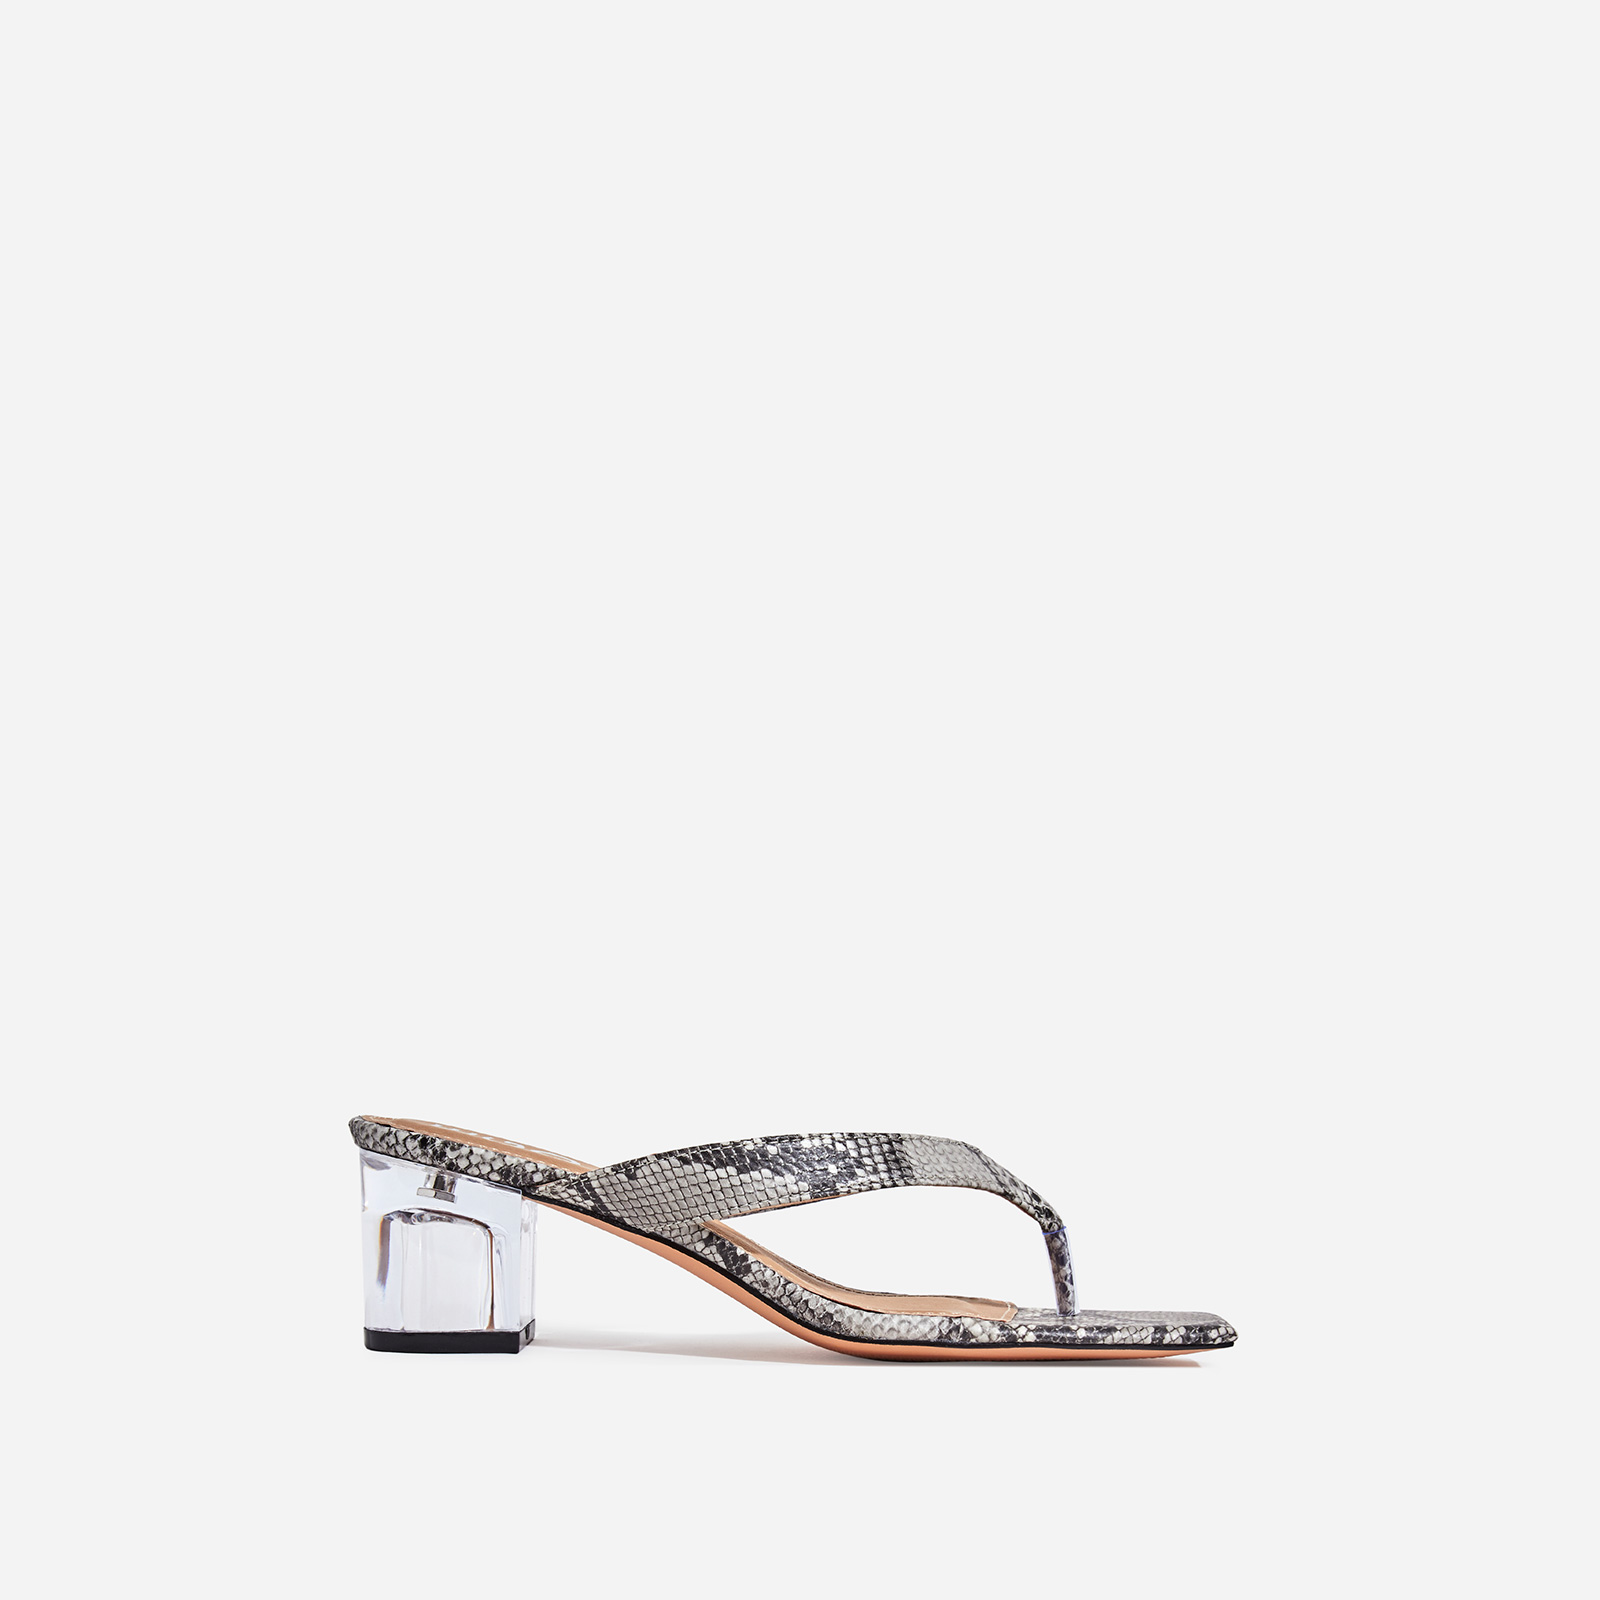 Emme Square Toe Perspex Midi Block Heel Mule In Grey Snake Print Faux Leather